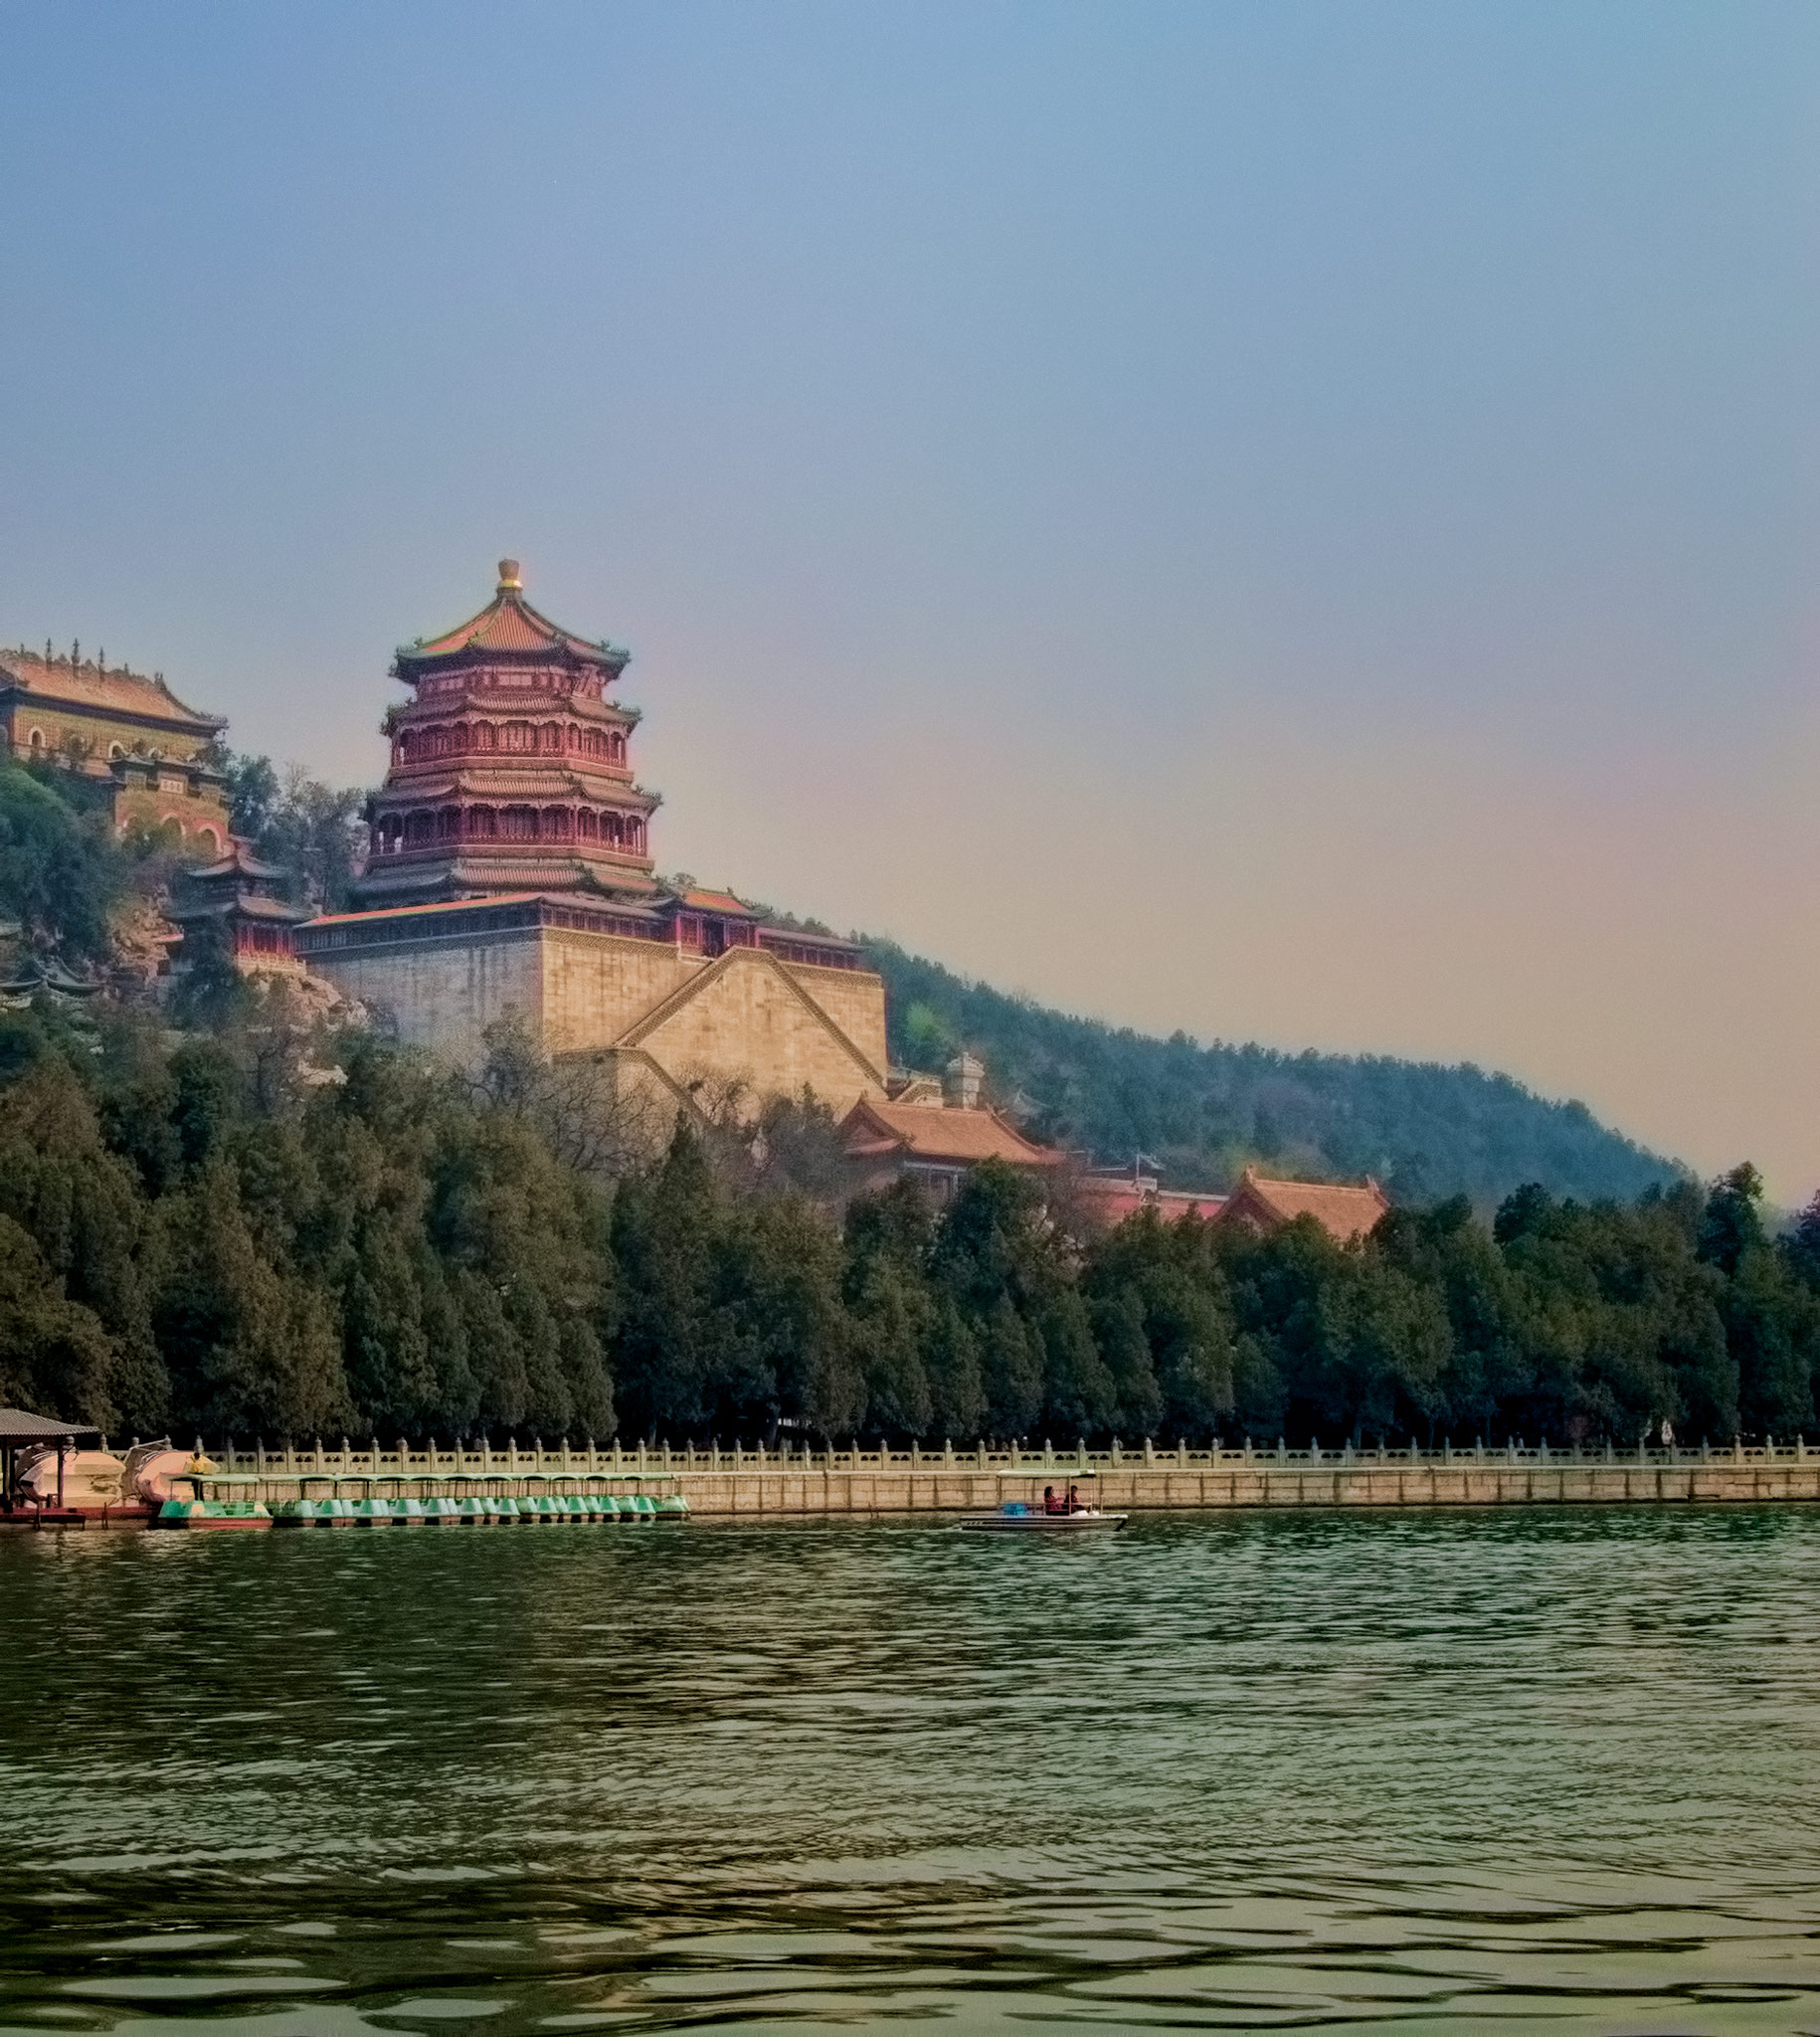 Photo: The Castle The Summer Palace, Beijing - April 2009  On our first day in Beijing we were taken by bus to the Imperial Summer Palace. This is a quite large complex, bigger- I think- than the Forbidden City. It is situated beside a lake, and the surroundings are quite beautiful.  One interesting thing about this place: the lake is man-made- and the mountain upon which the castle sits was created from the soil and rocks that were dug out of the ground to create the lake. Now that's a landscape project!  There's another version of this photo in the China album, but I decided to take another run at it, since both Photoshop(CC) and its plugins are much improved in helpful technology since I did the previous one.  There were problems with the original raw file stemming primarily from the tiny sensor in the camera. That, and my marginal skills. D'Oh! Good thing I know a bit about #PhotoshopCC !  Used in this production were #TopazDenoise3 , #Nik  #Viveza , and #TopazAdjust5 .